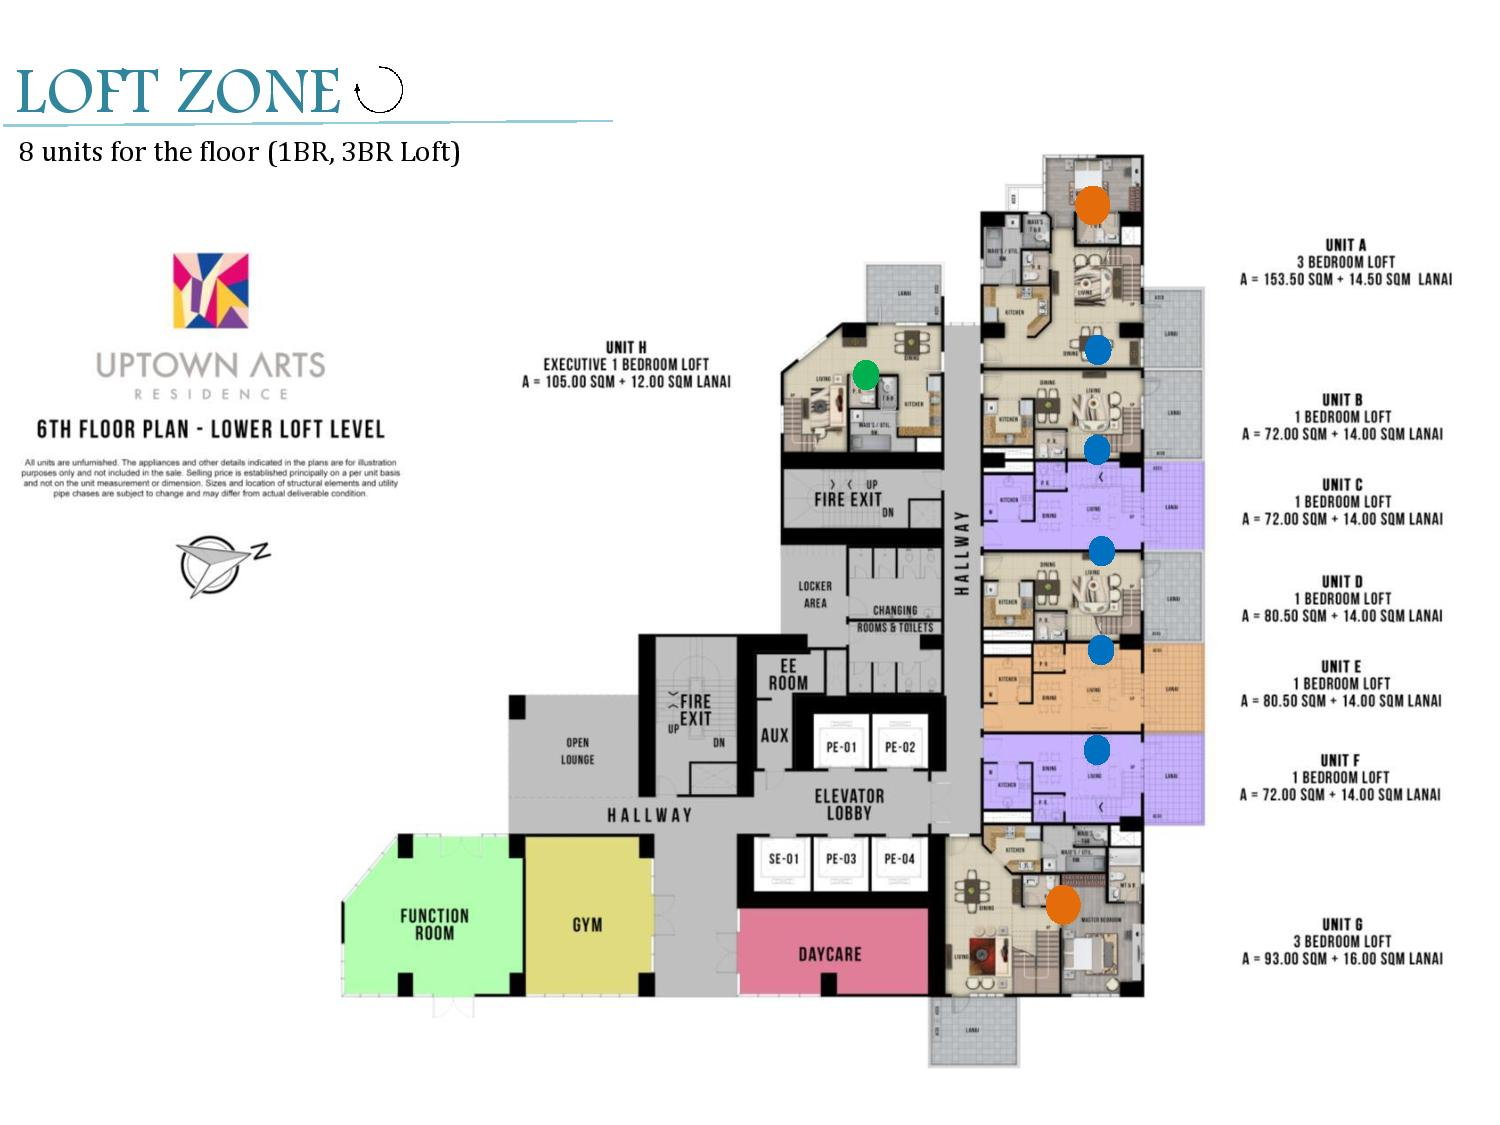 Uptown Arts Residence Floor Plan Uptown Arts Residence  Preselling Condo For Sale in Bonifacio Global City BGC